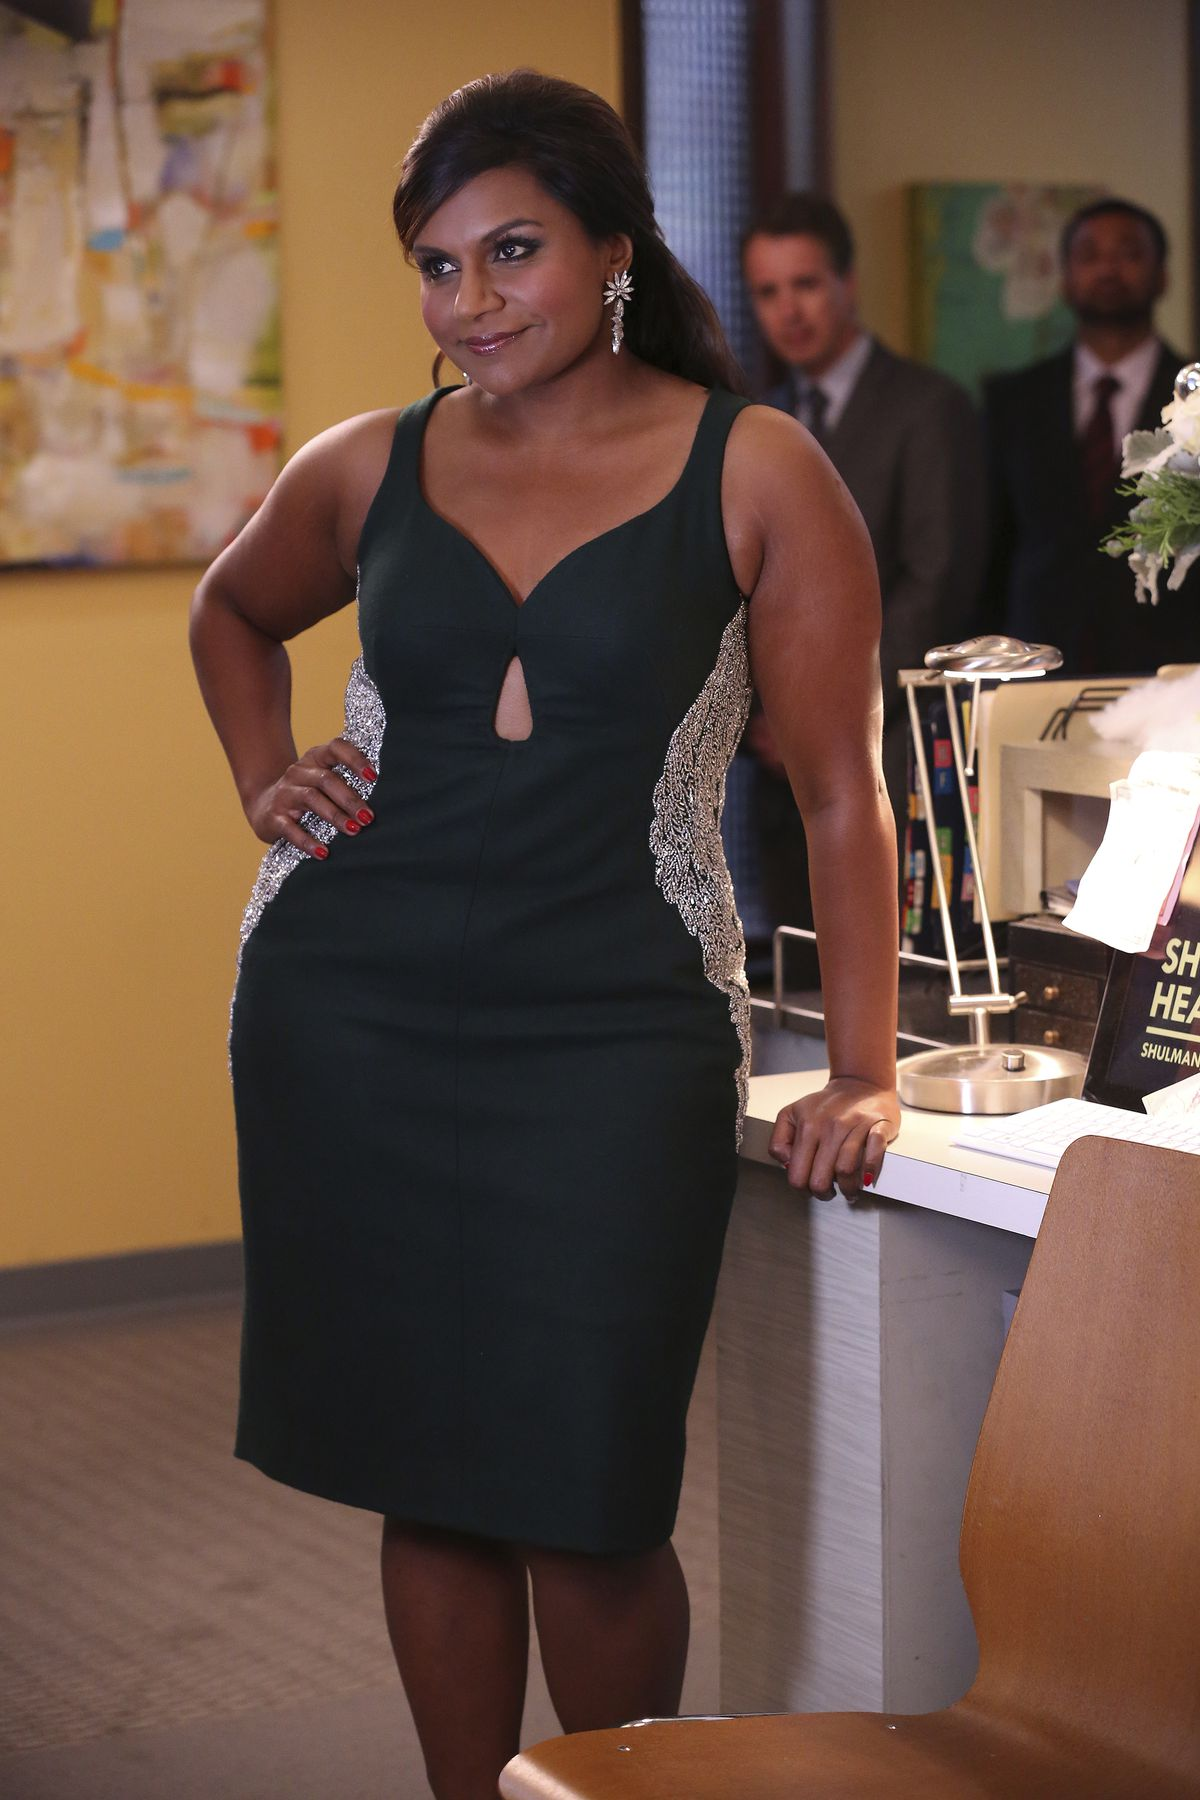 Mindy Kaling as Mindy Lahiri in season 3 of The Mindy Project.